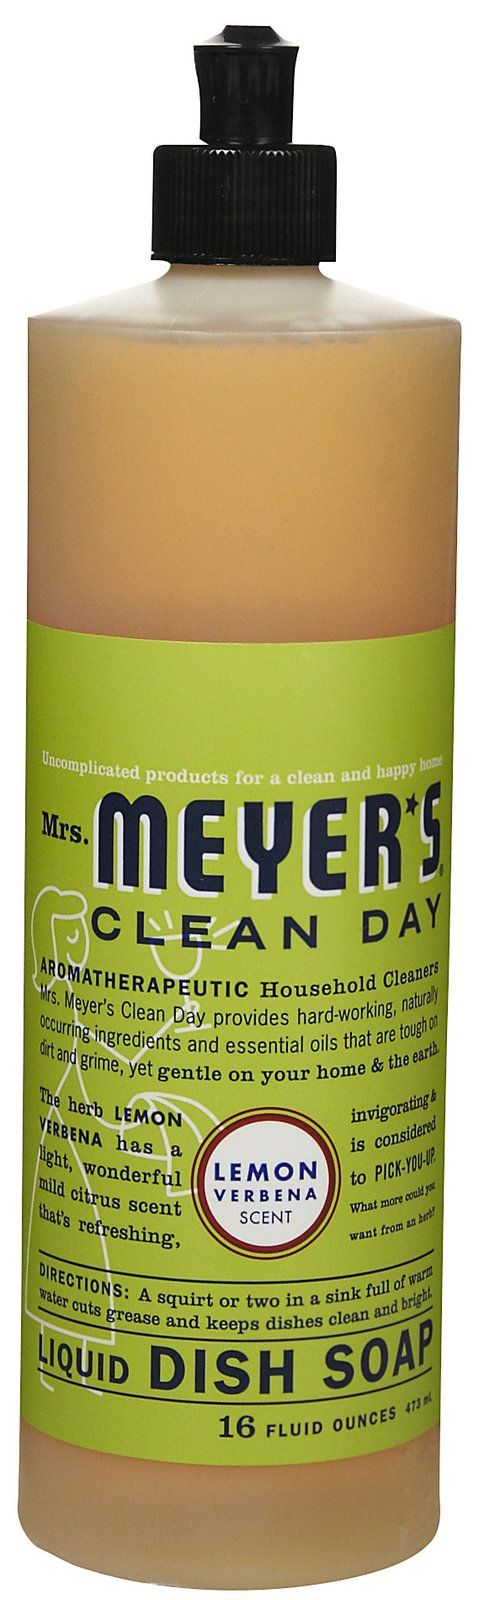 Mrs. Meyer's Clean Day Liquid Dish Soap, Lemon Verbena - it gives a mundane task a whole new meaning!